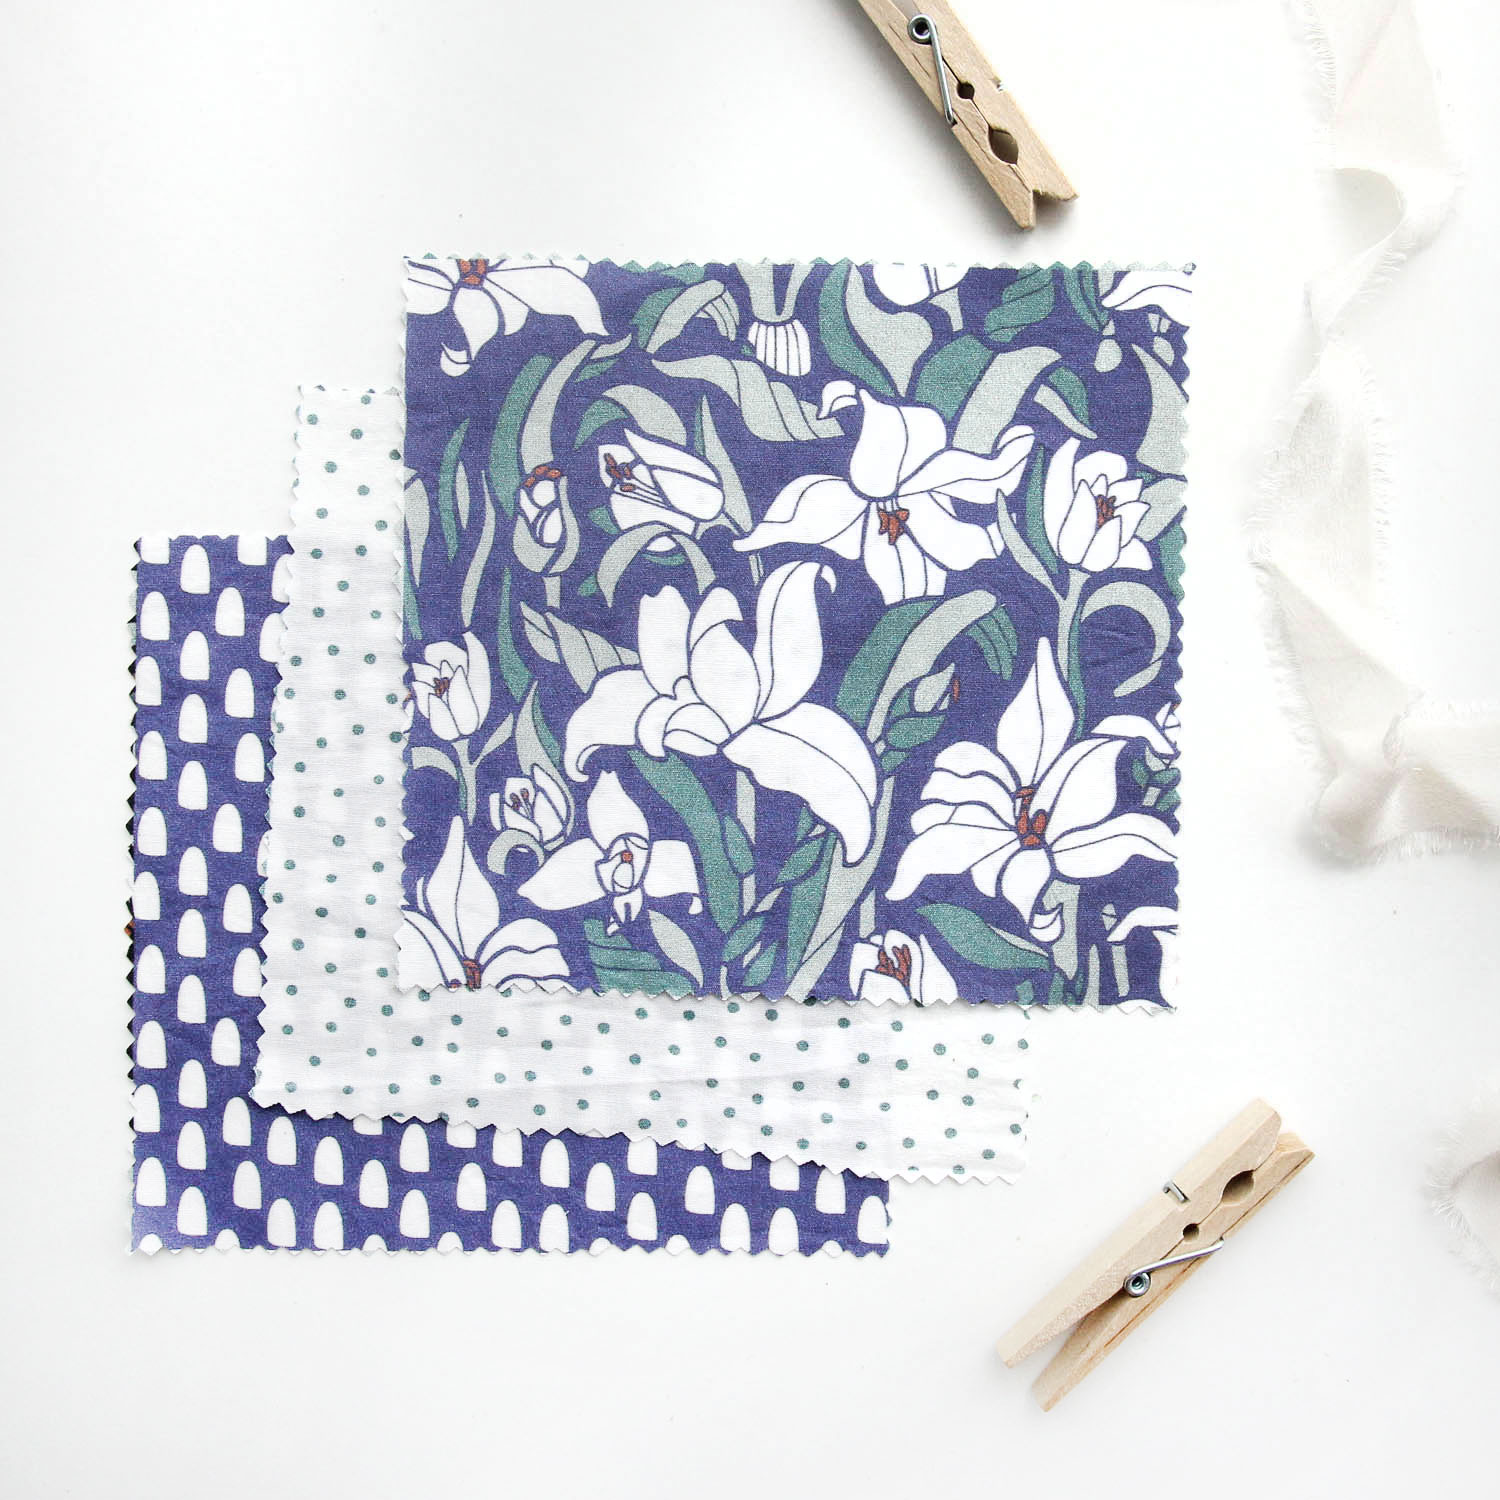 Lotus Pond Fabric Swatches - Floral Fabric Designs for Licensing by Root & Branch Paper Co.